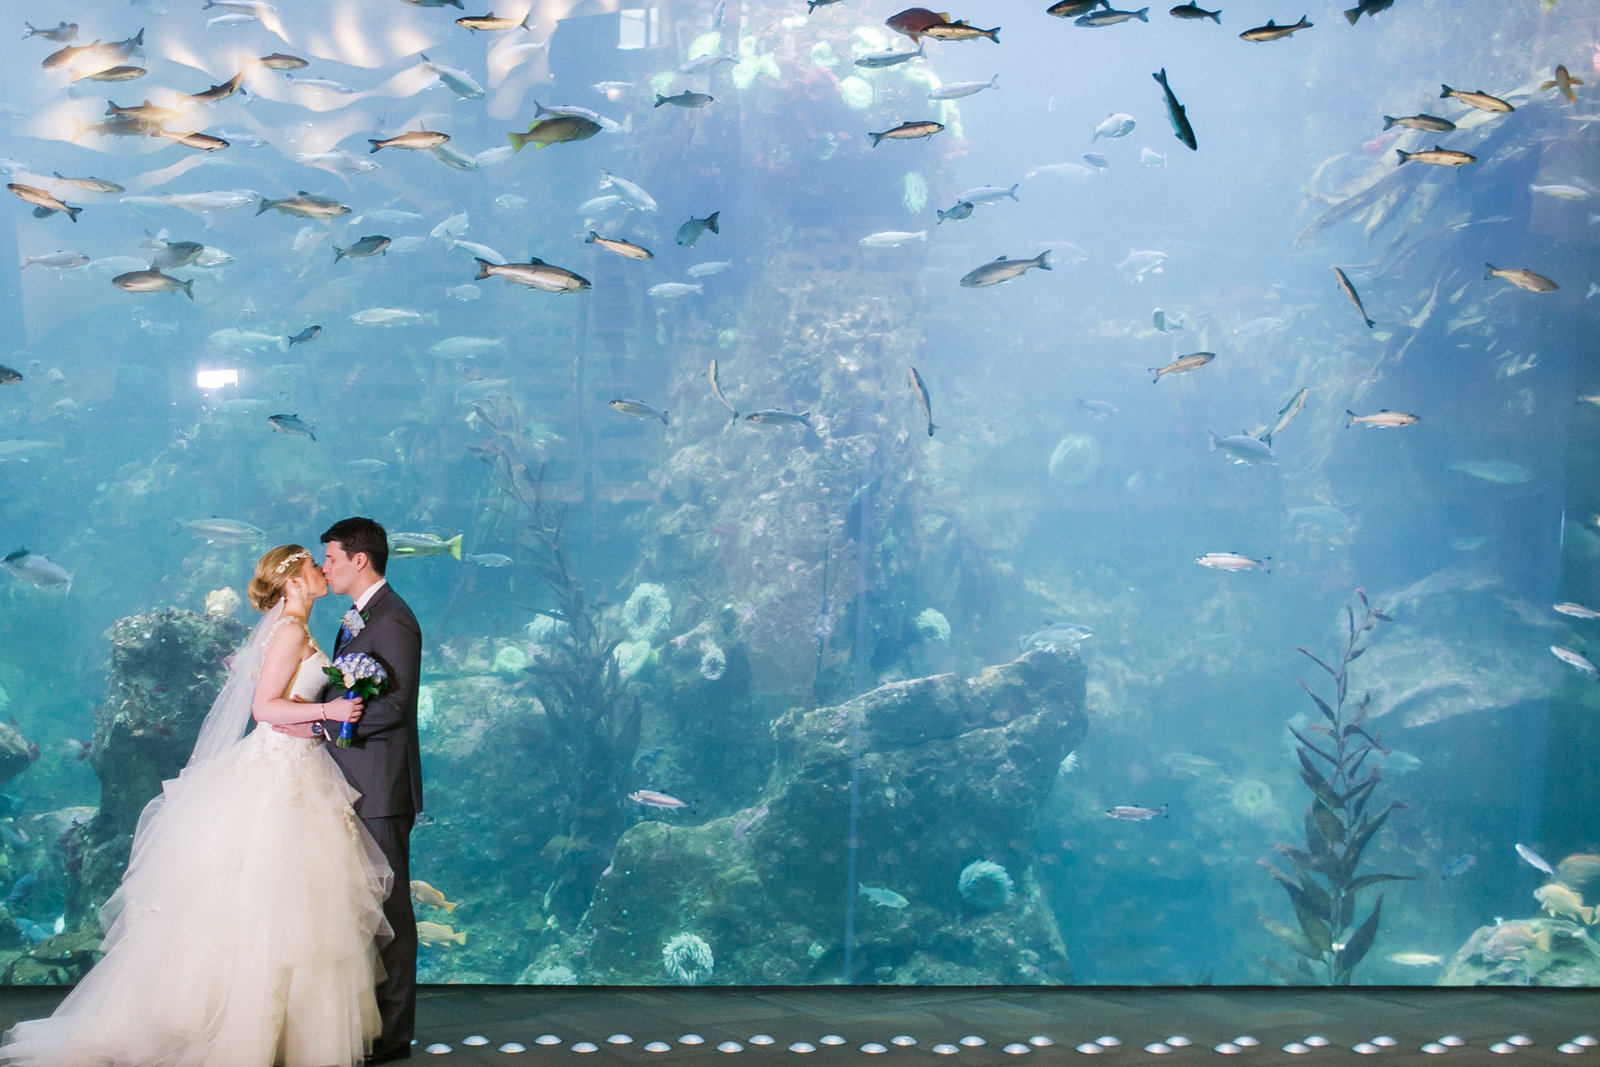 michael-jody-seattle-aquarium-wedding451426